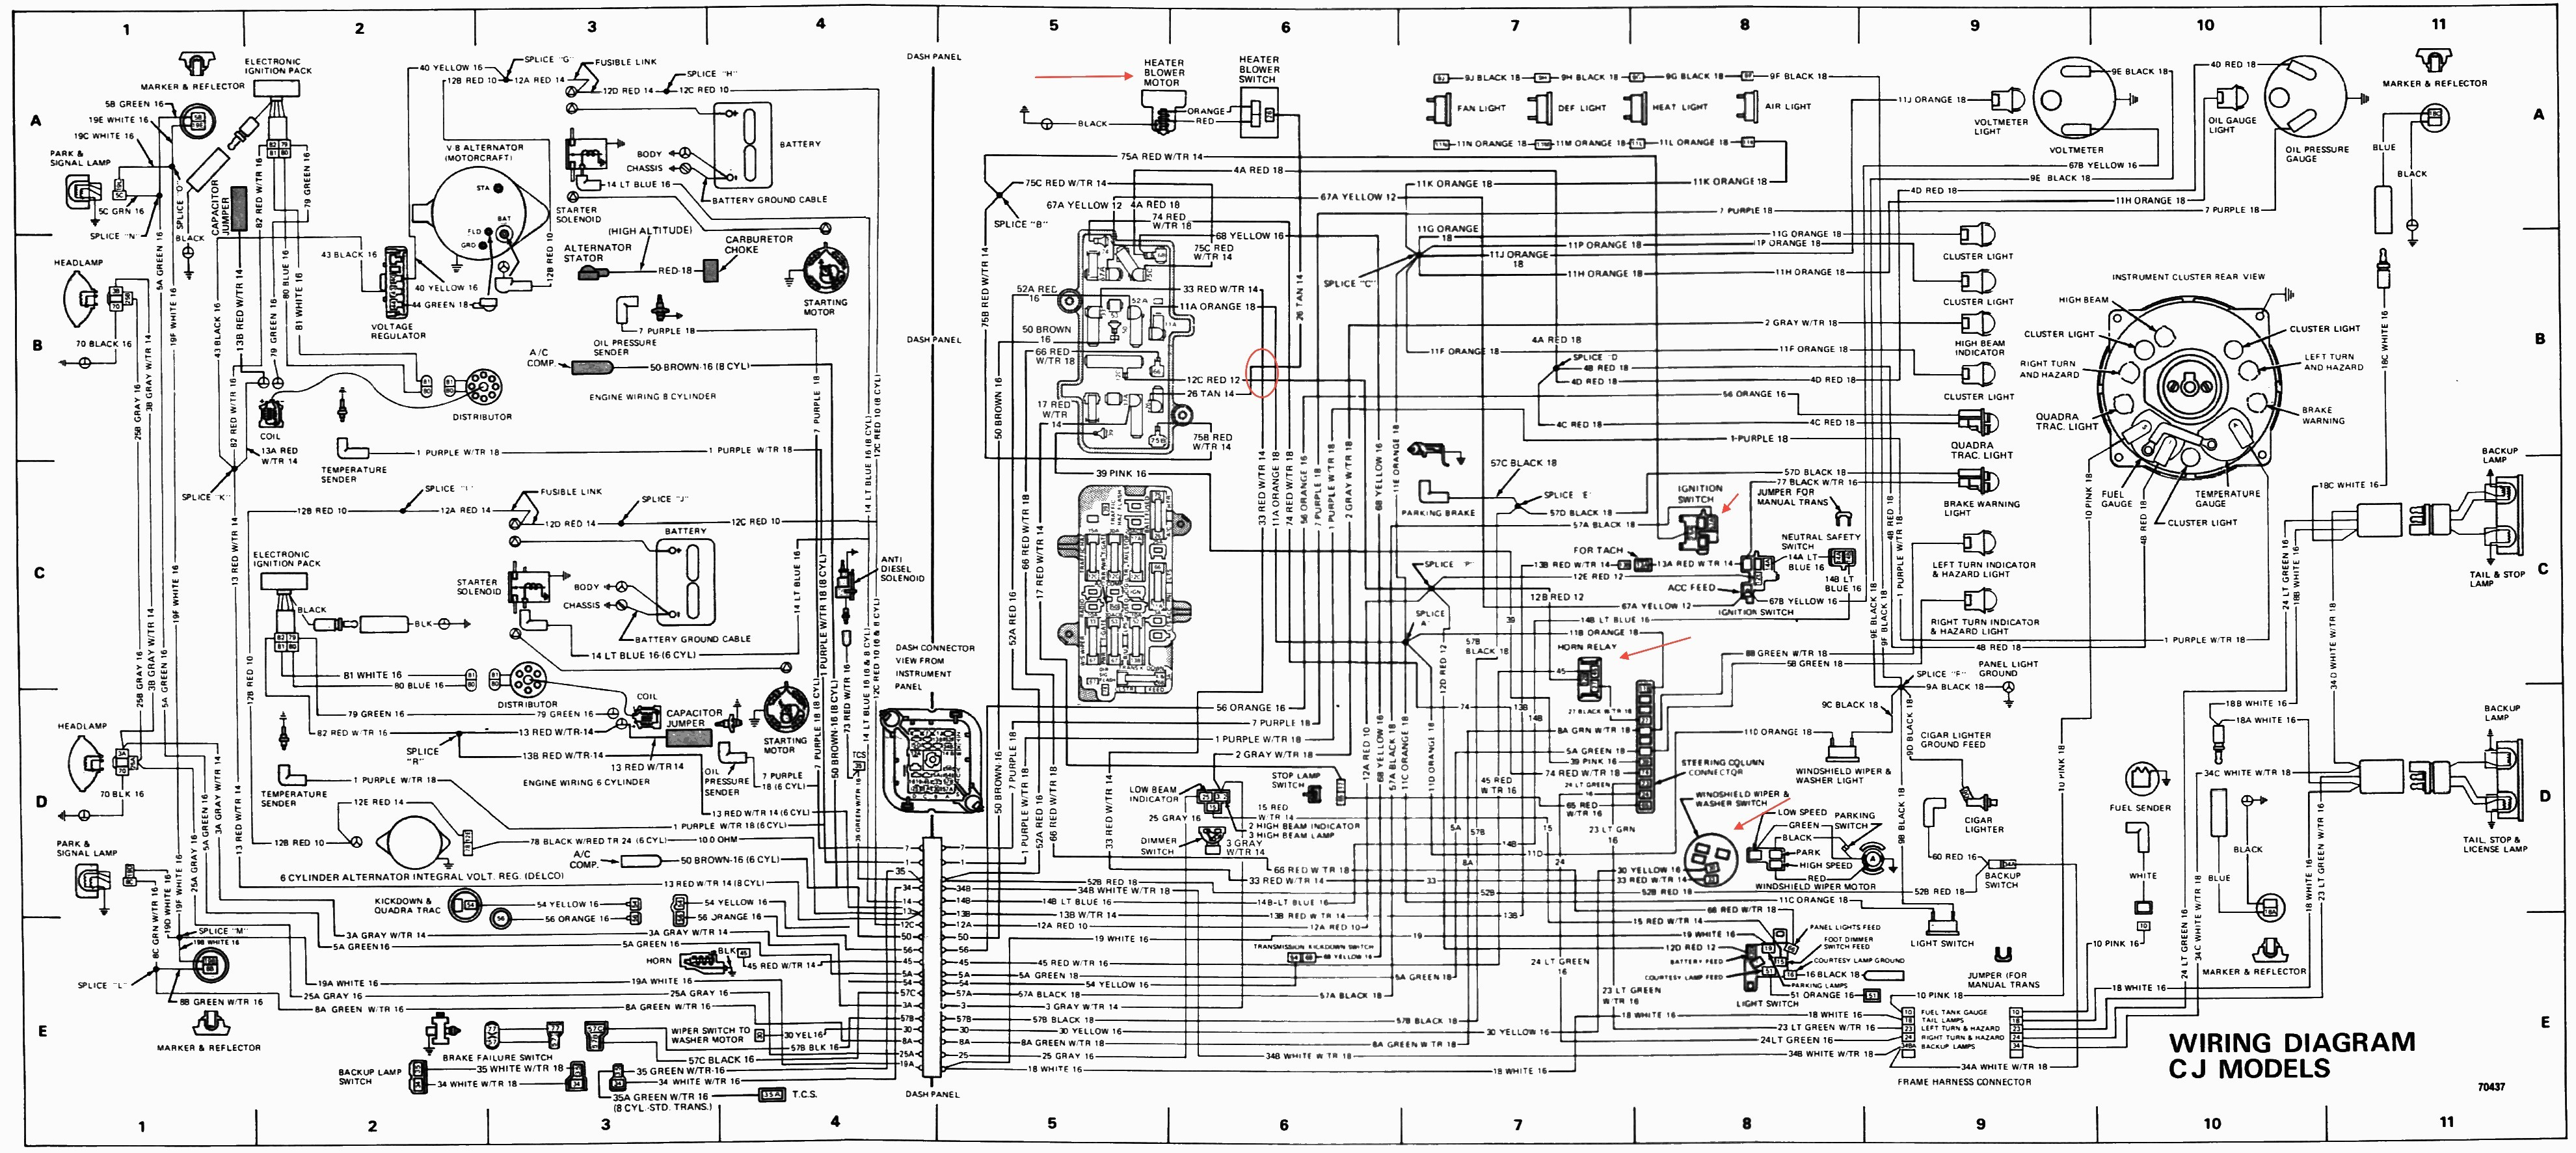 amc 304 wiring diagram wiring diagramamc 304 wiring diagram everything wiring diagramamc 304 motor wiring diagram wiring diagram schematics amc 304